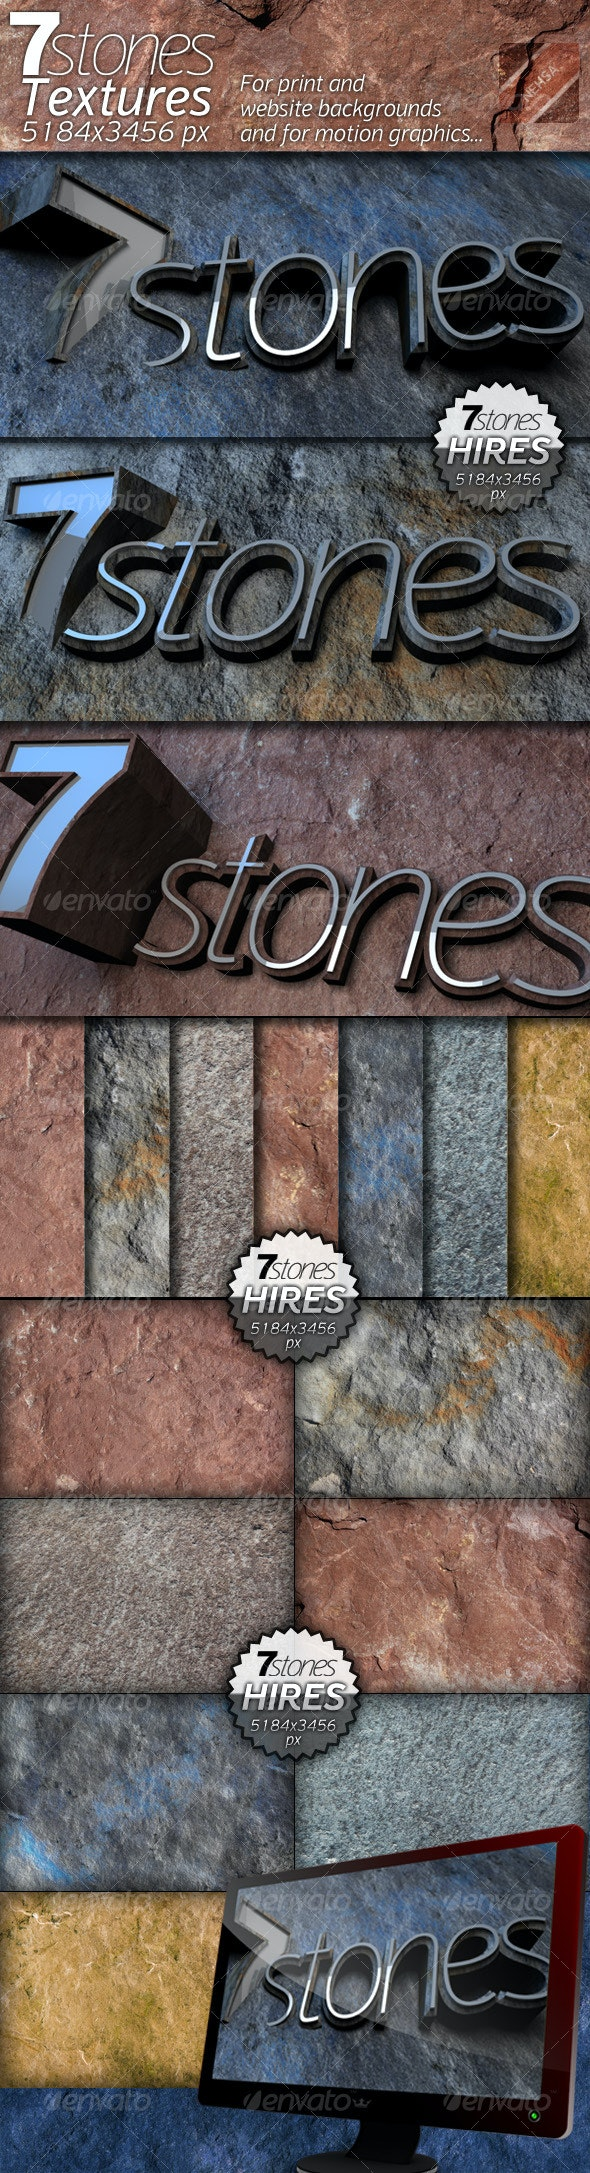 7stones - Texture package - Stone Textures